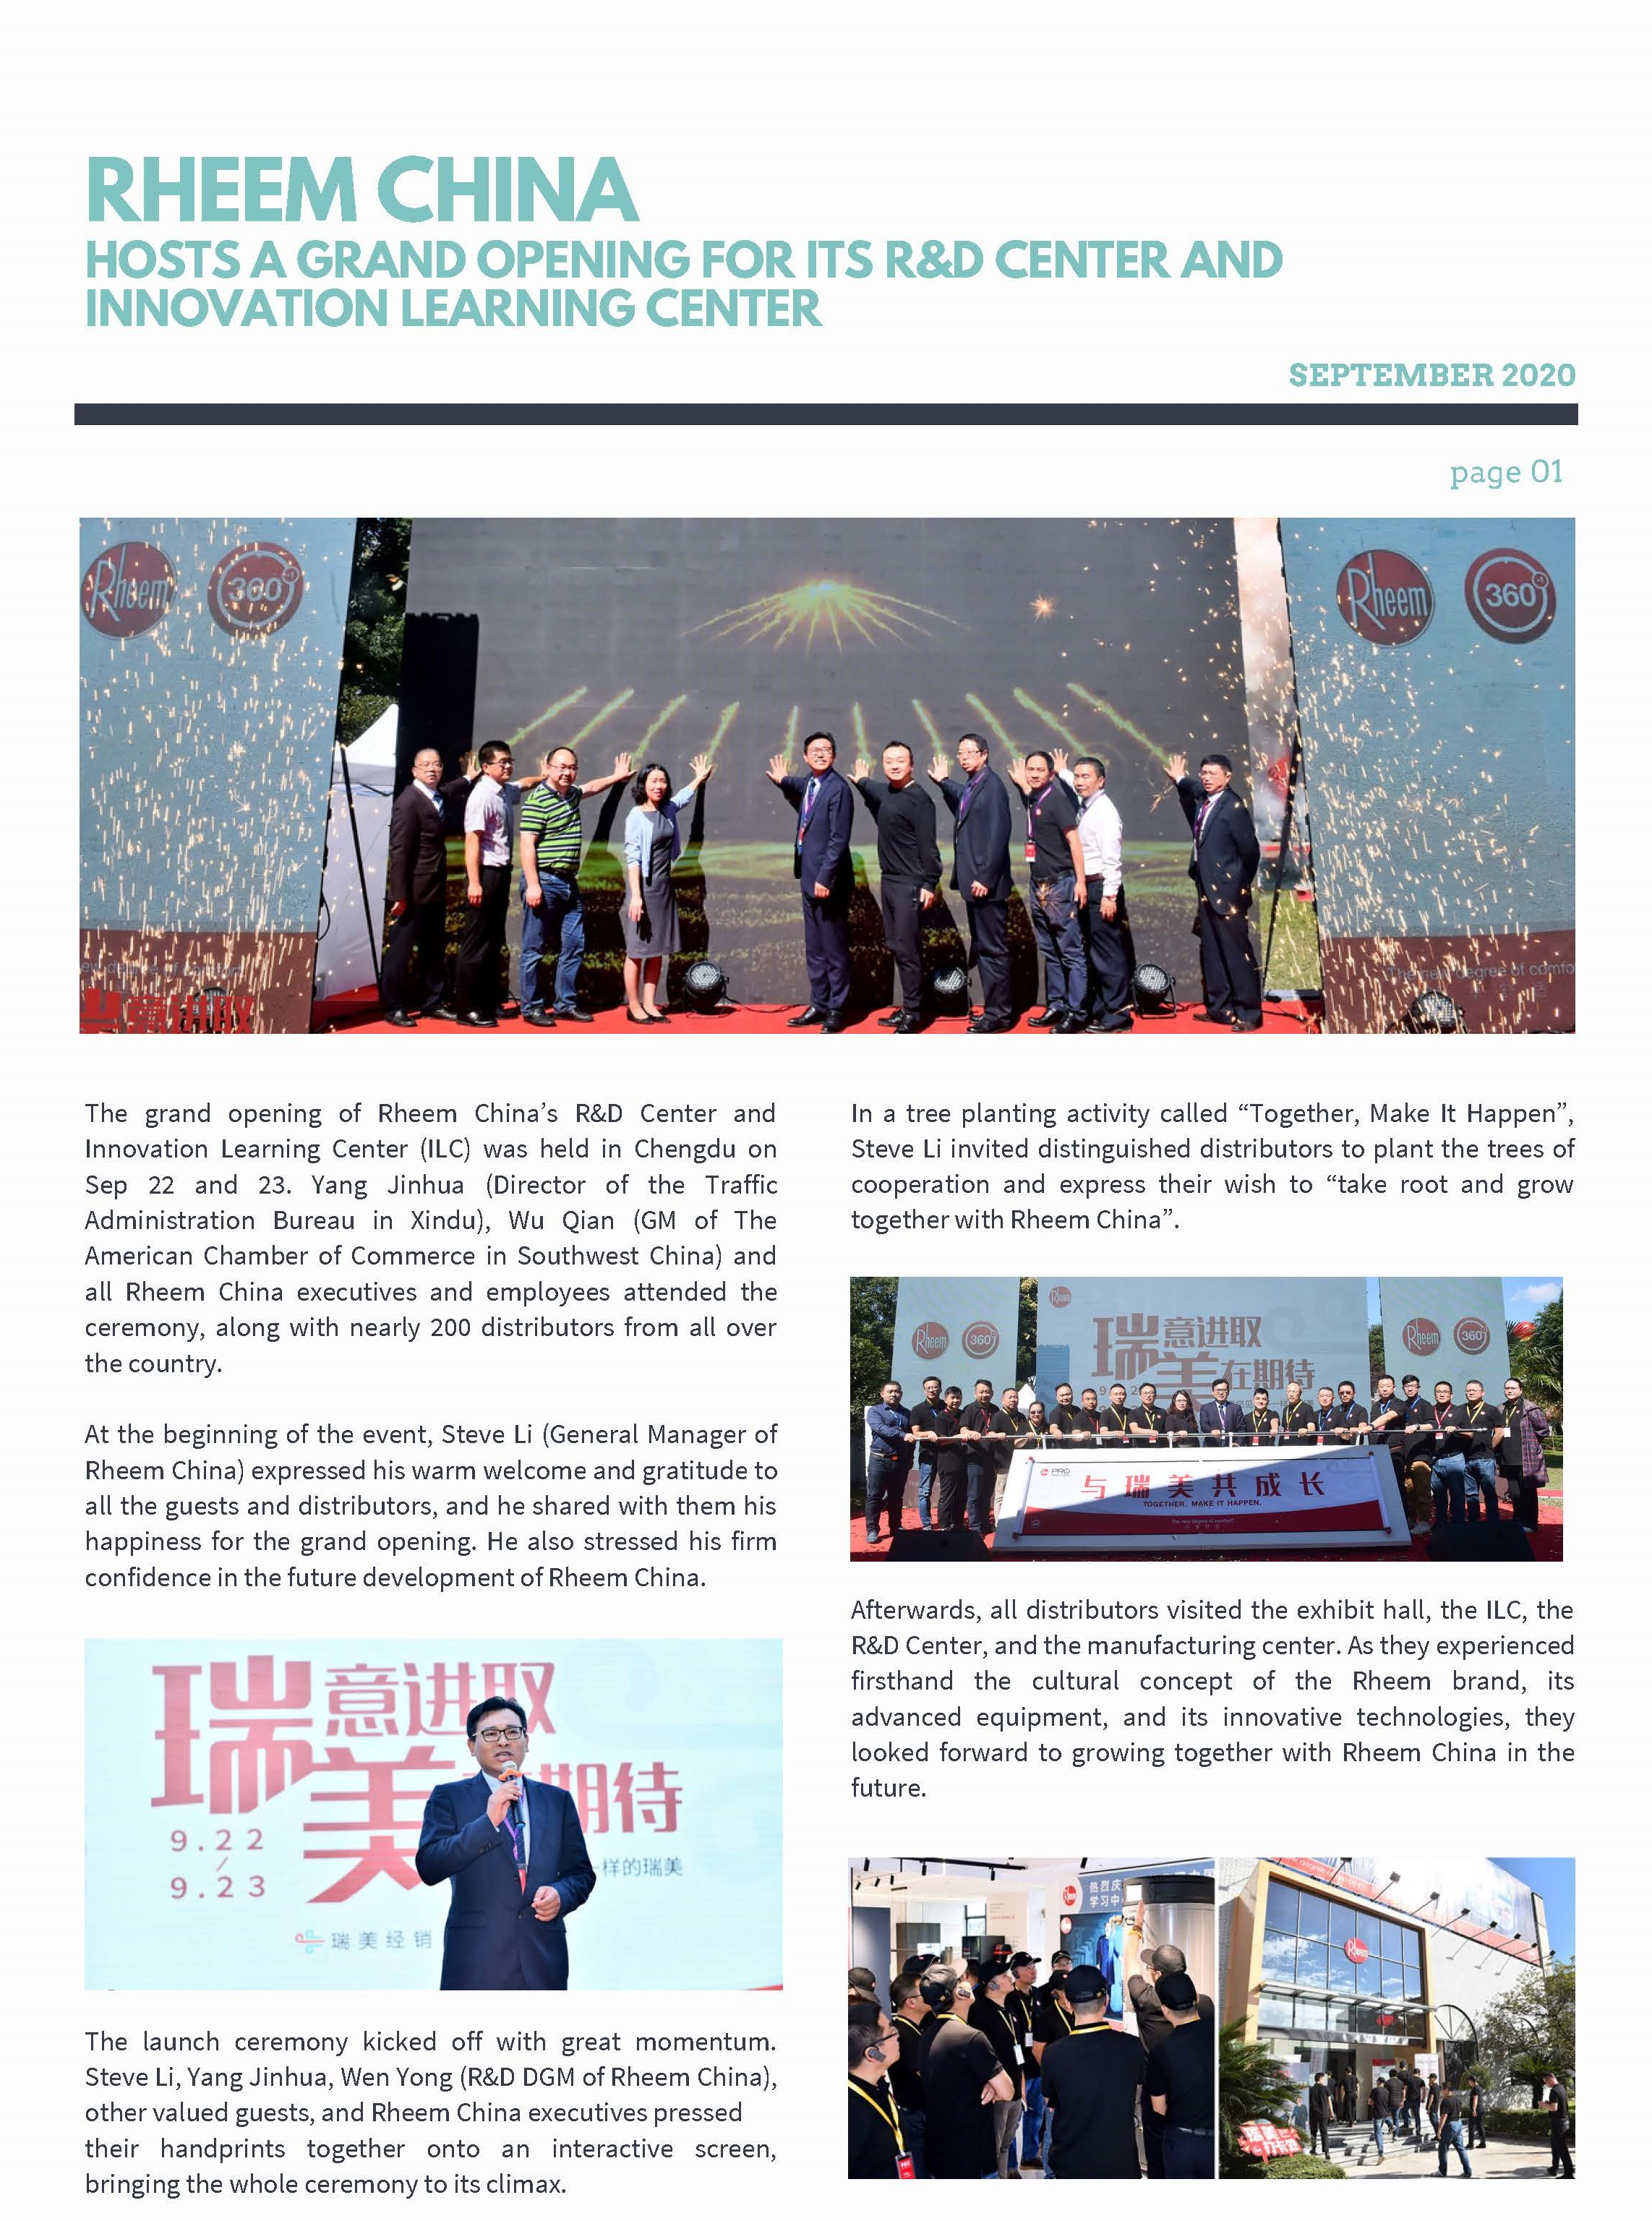 Rheem China hosts a grand opening for its R&D Center and Innovation Learning Center